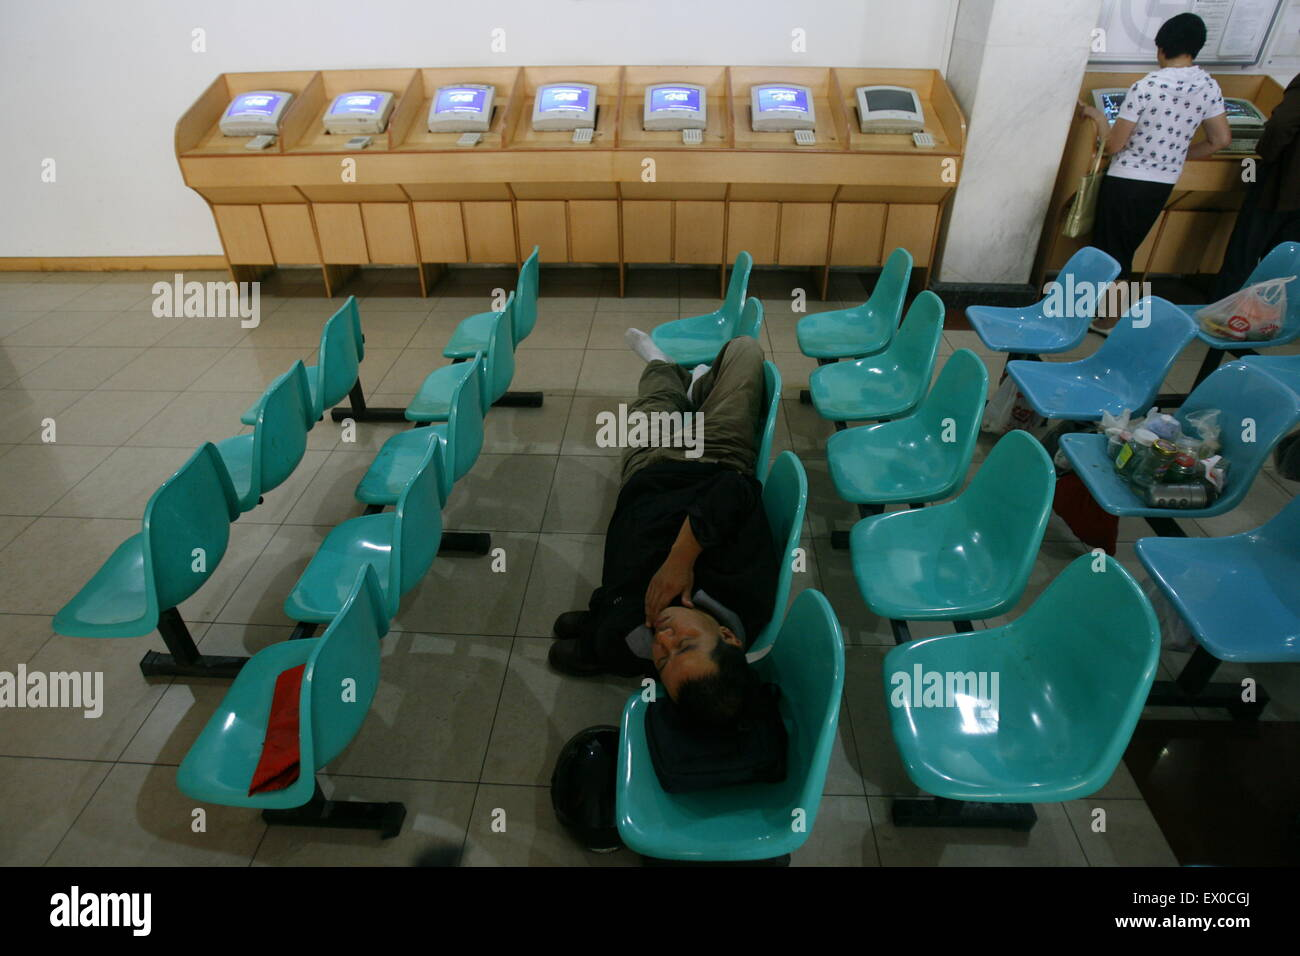 An investor naps in front of an electronic board with stock information at a brokerage house in Wuhan, Hubei province - Stock Image